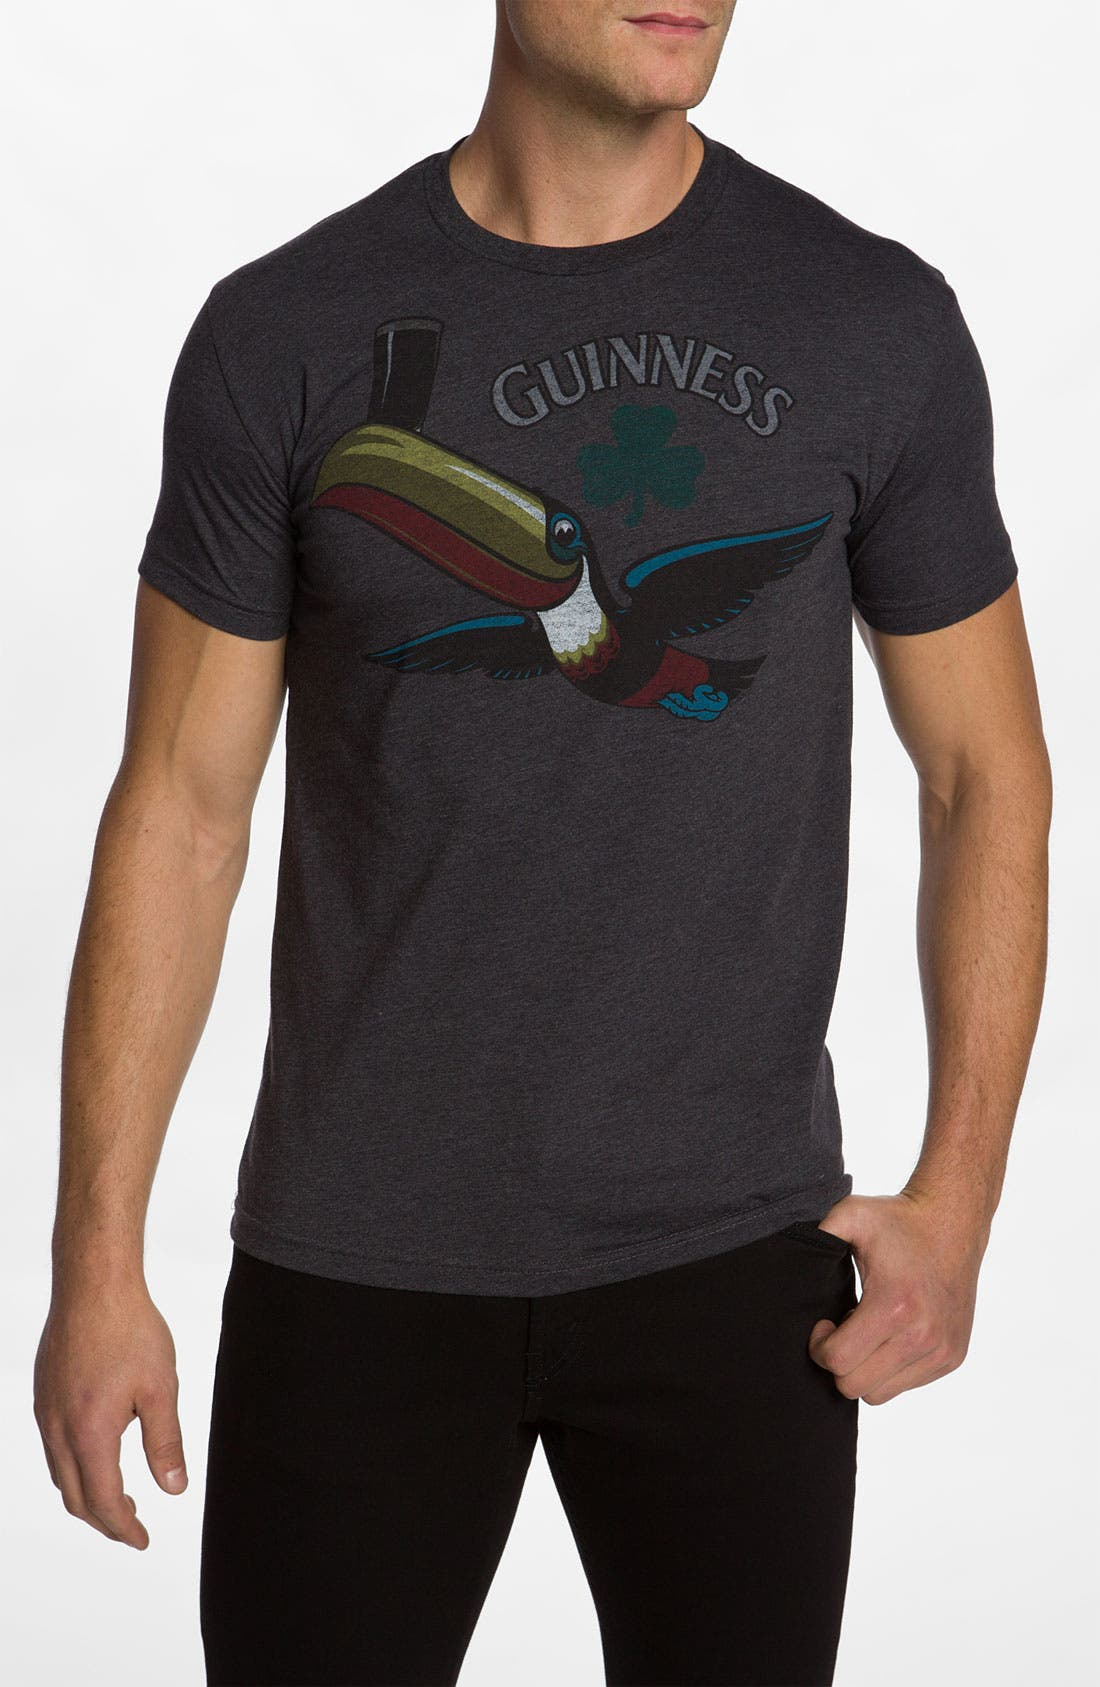 Alternate Image 1 Selected - Free Authority 'Guinness' T-Shirt